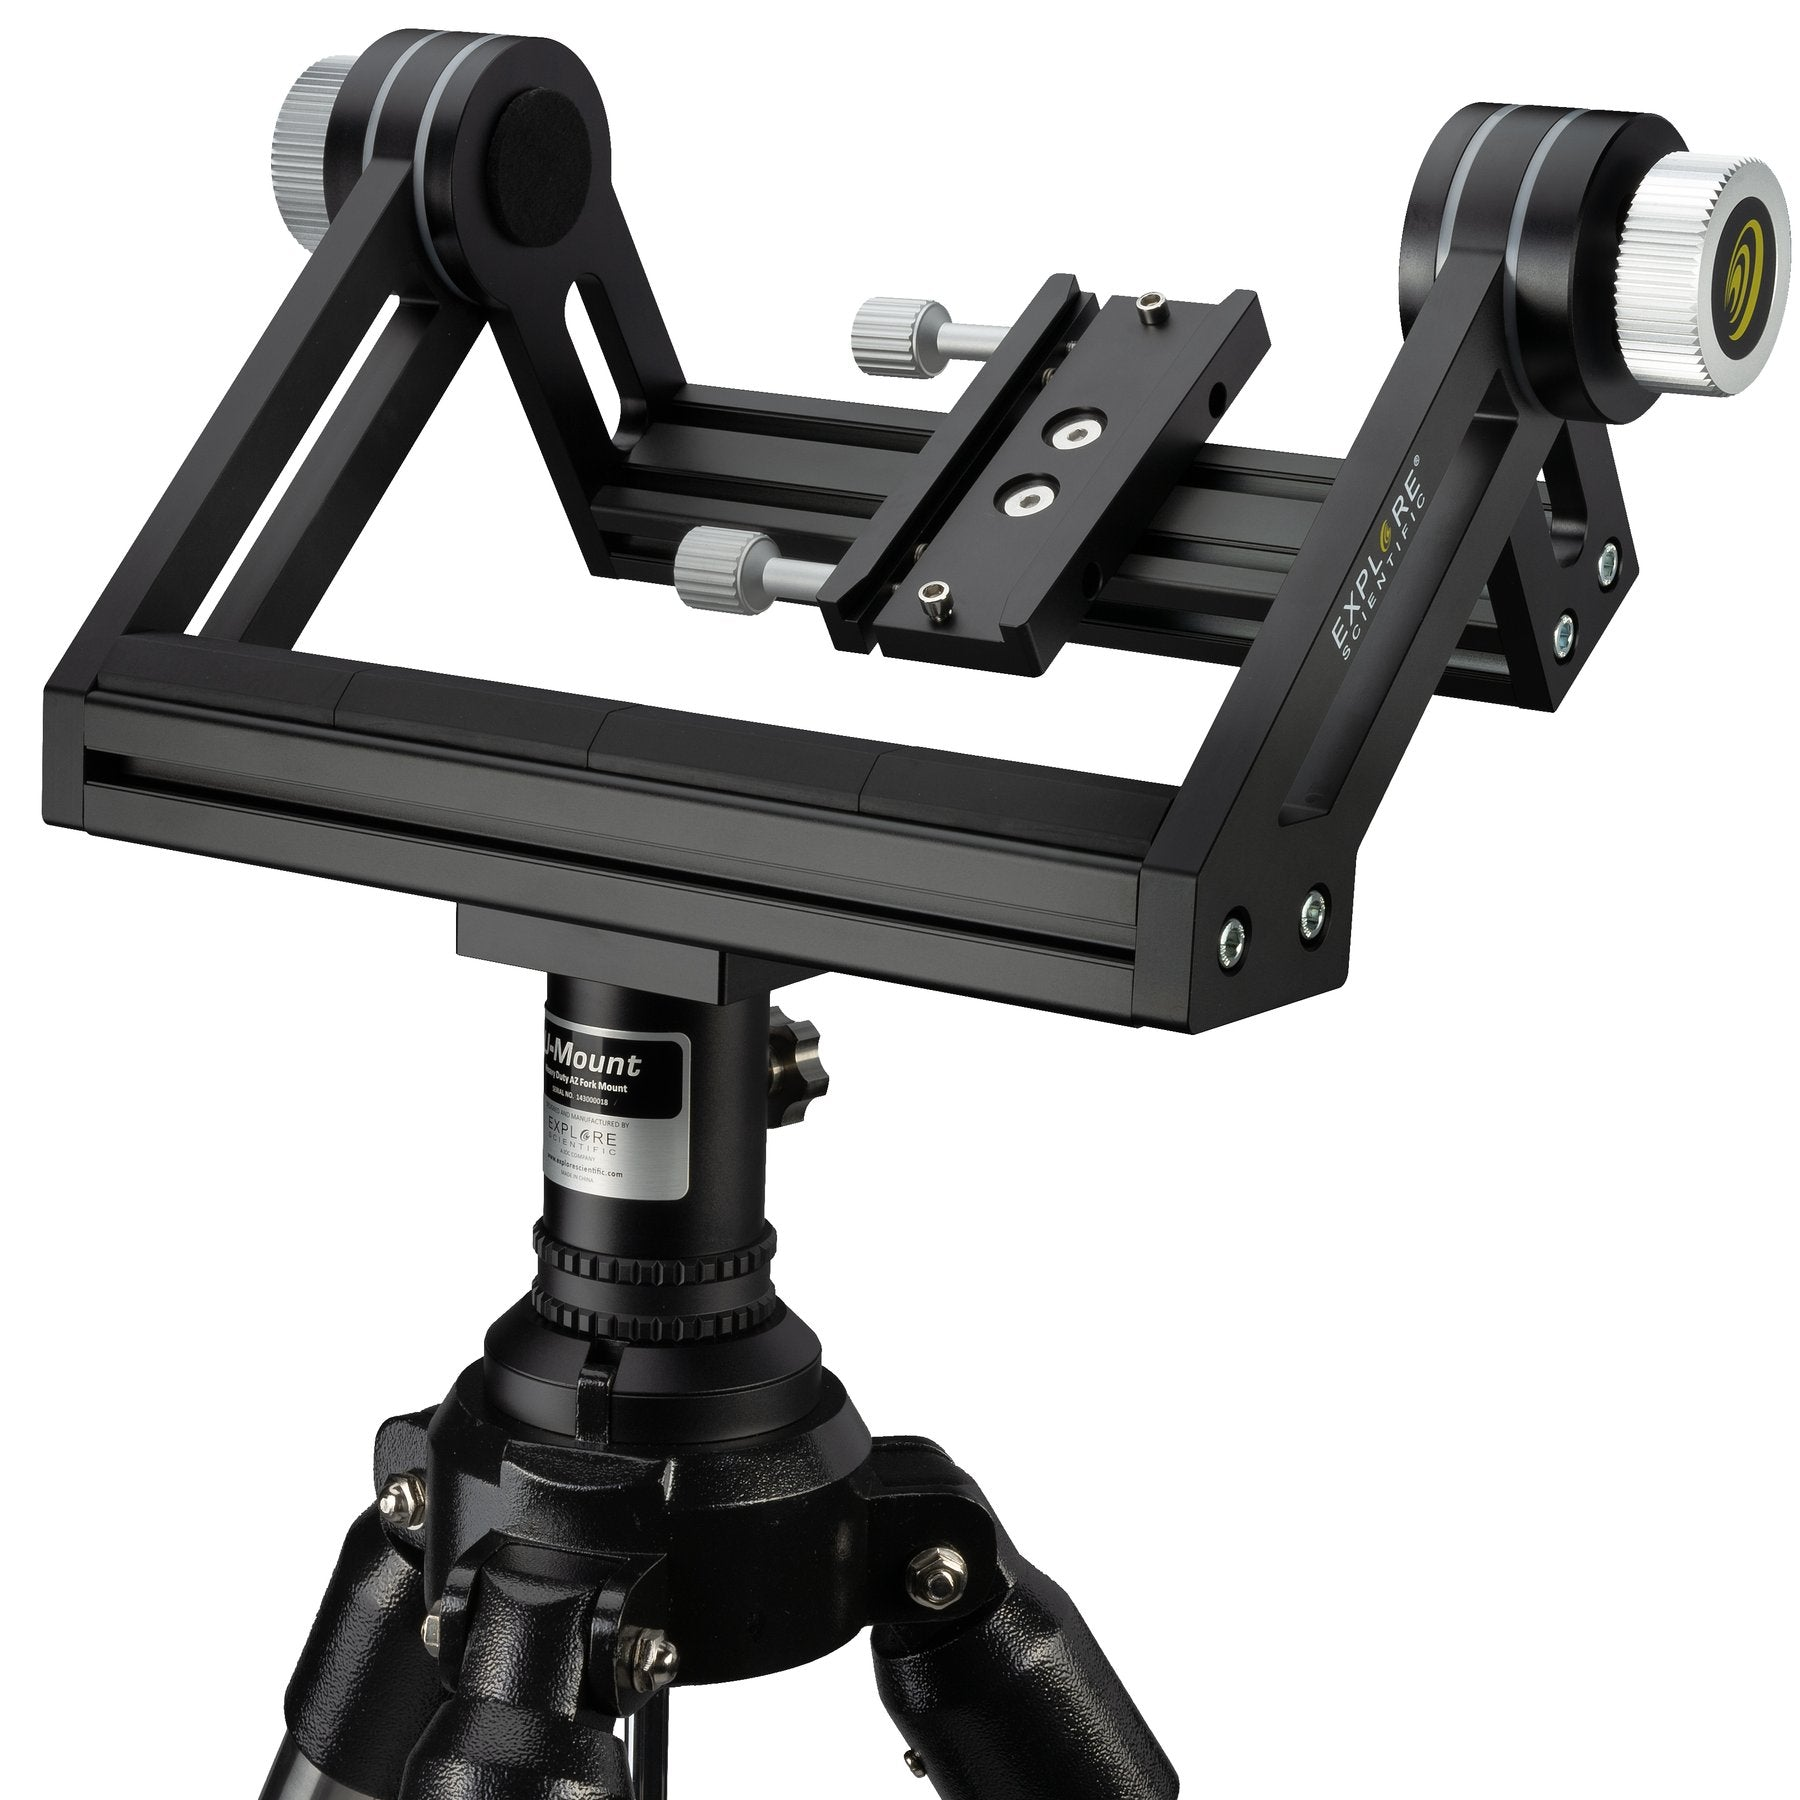 Explore Scientific U-mount with Tripod for Large Binoculars